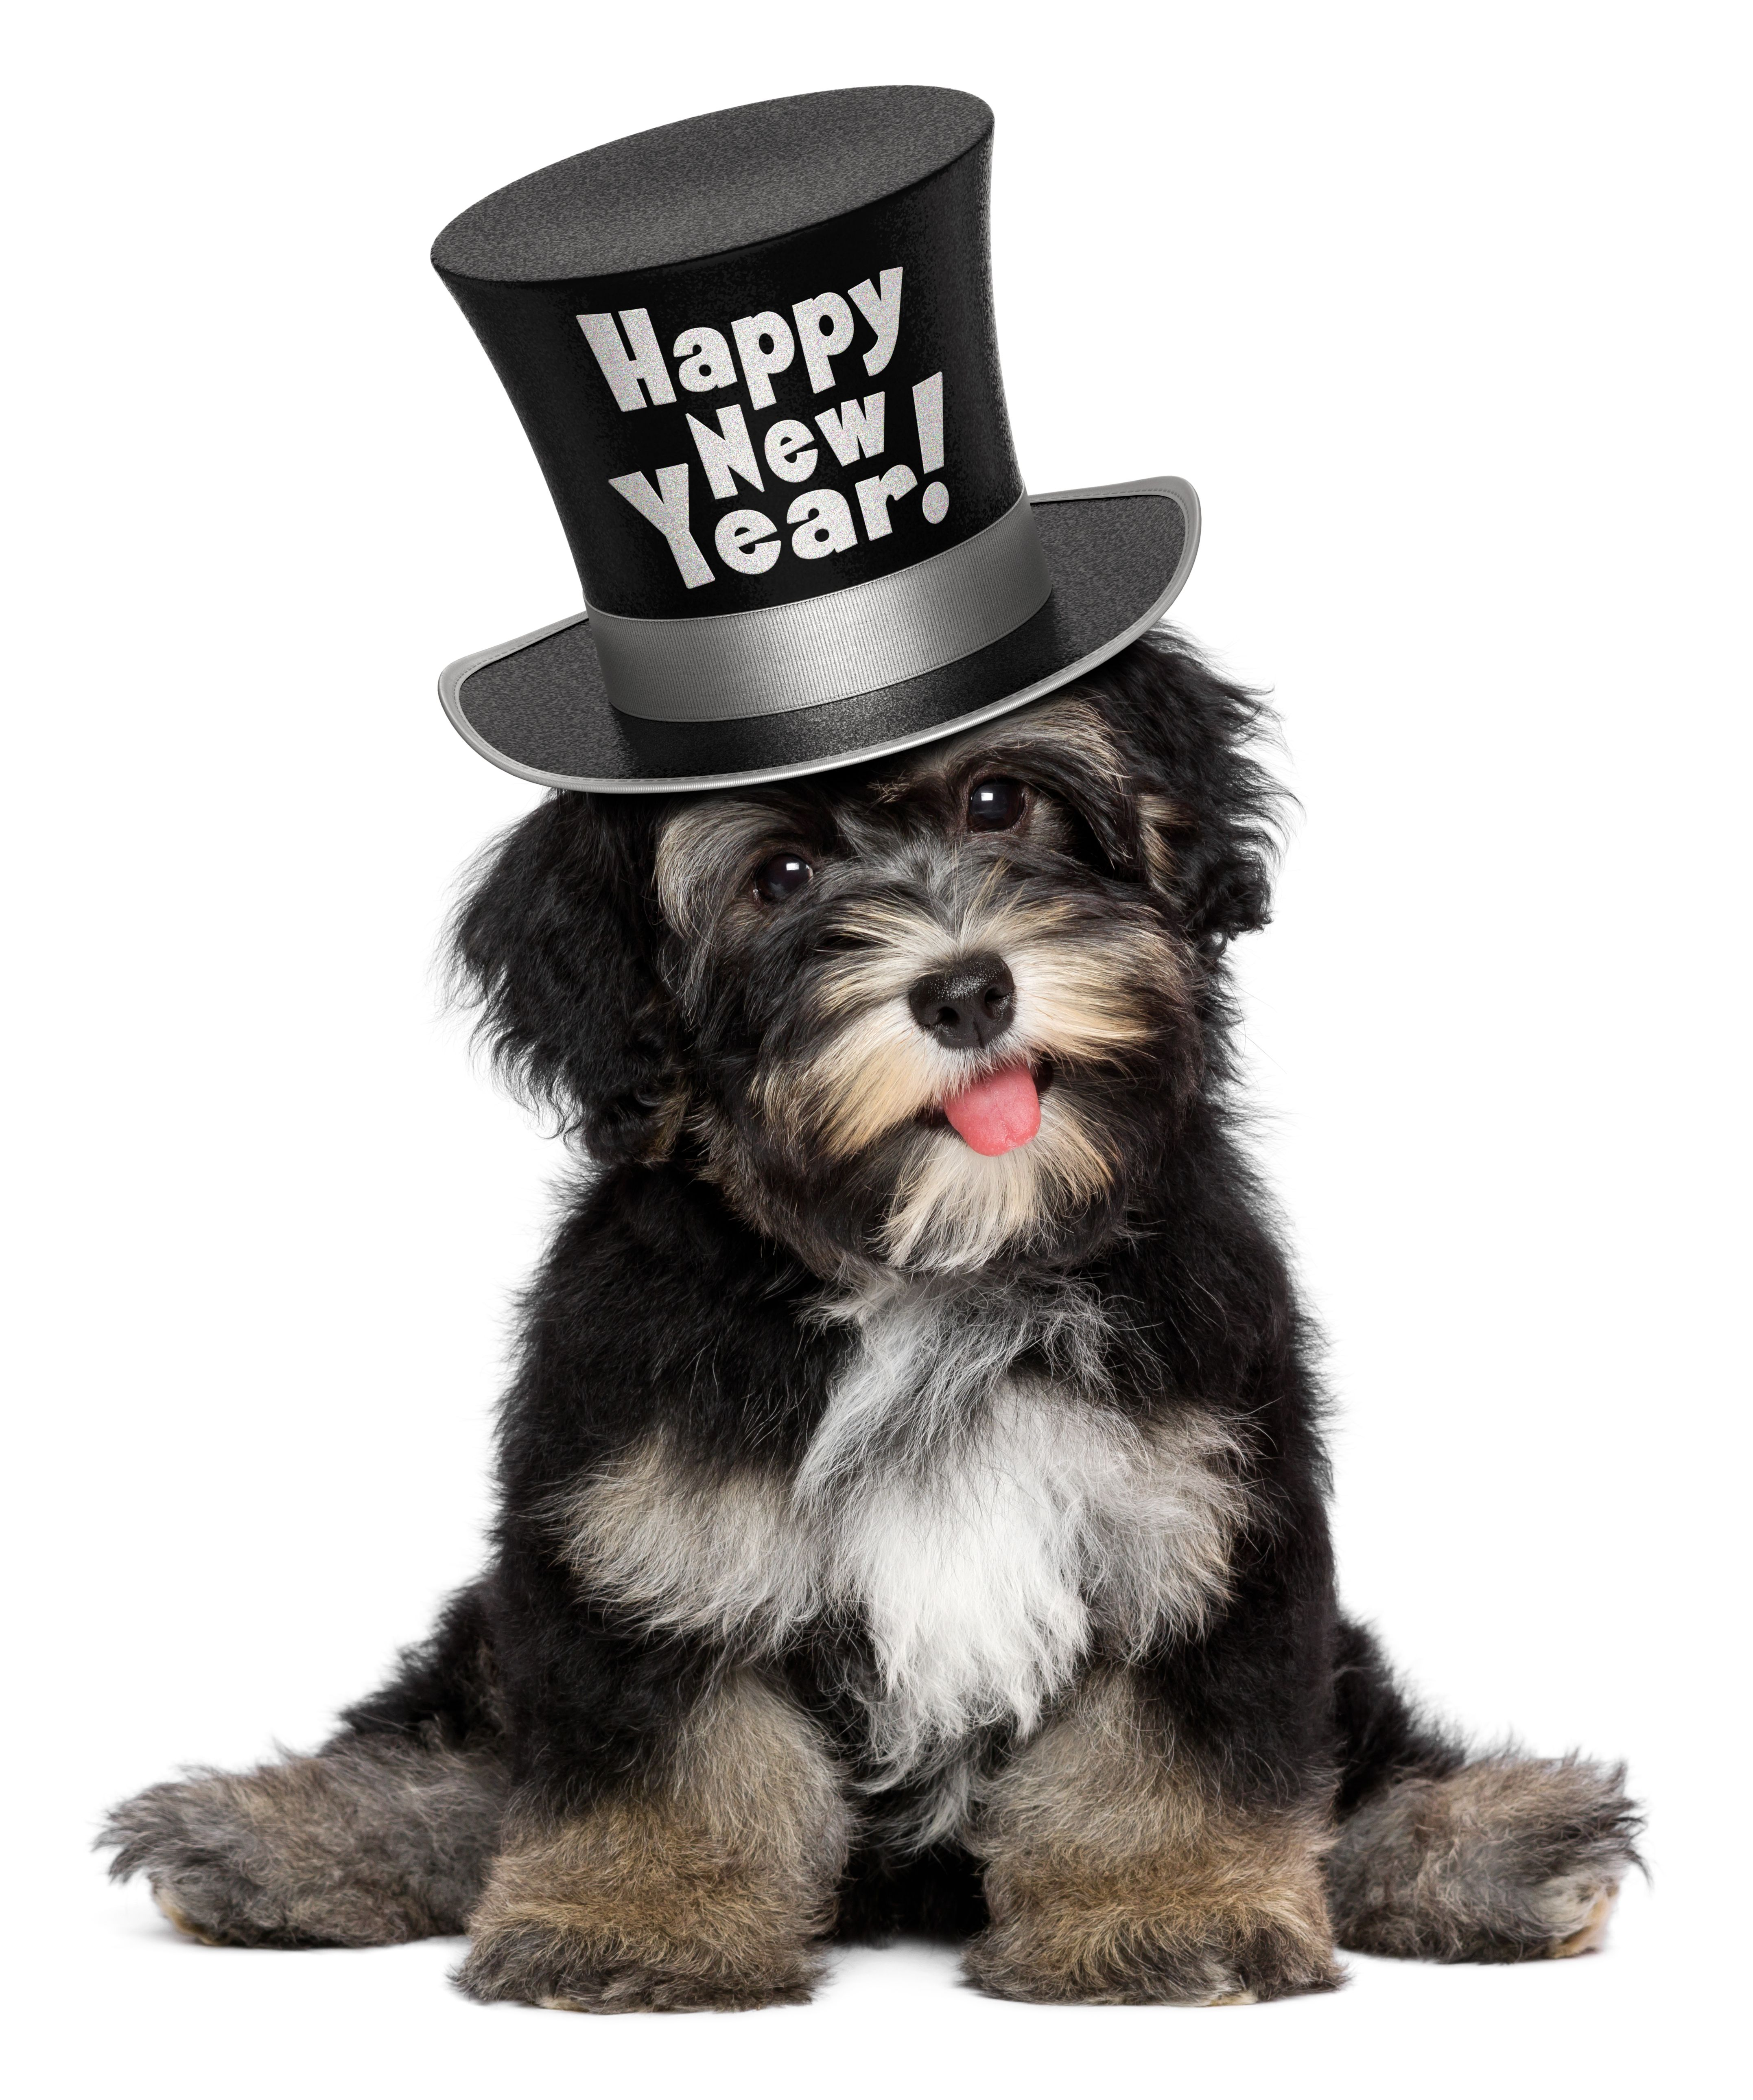 We Wish You And Your Family A Happy New Year And we thank